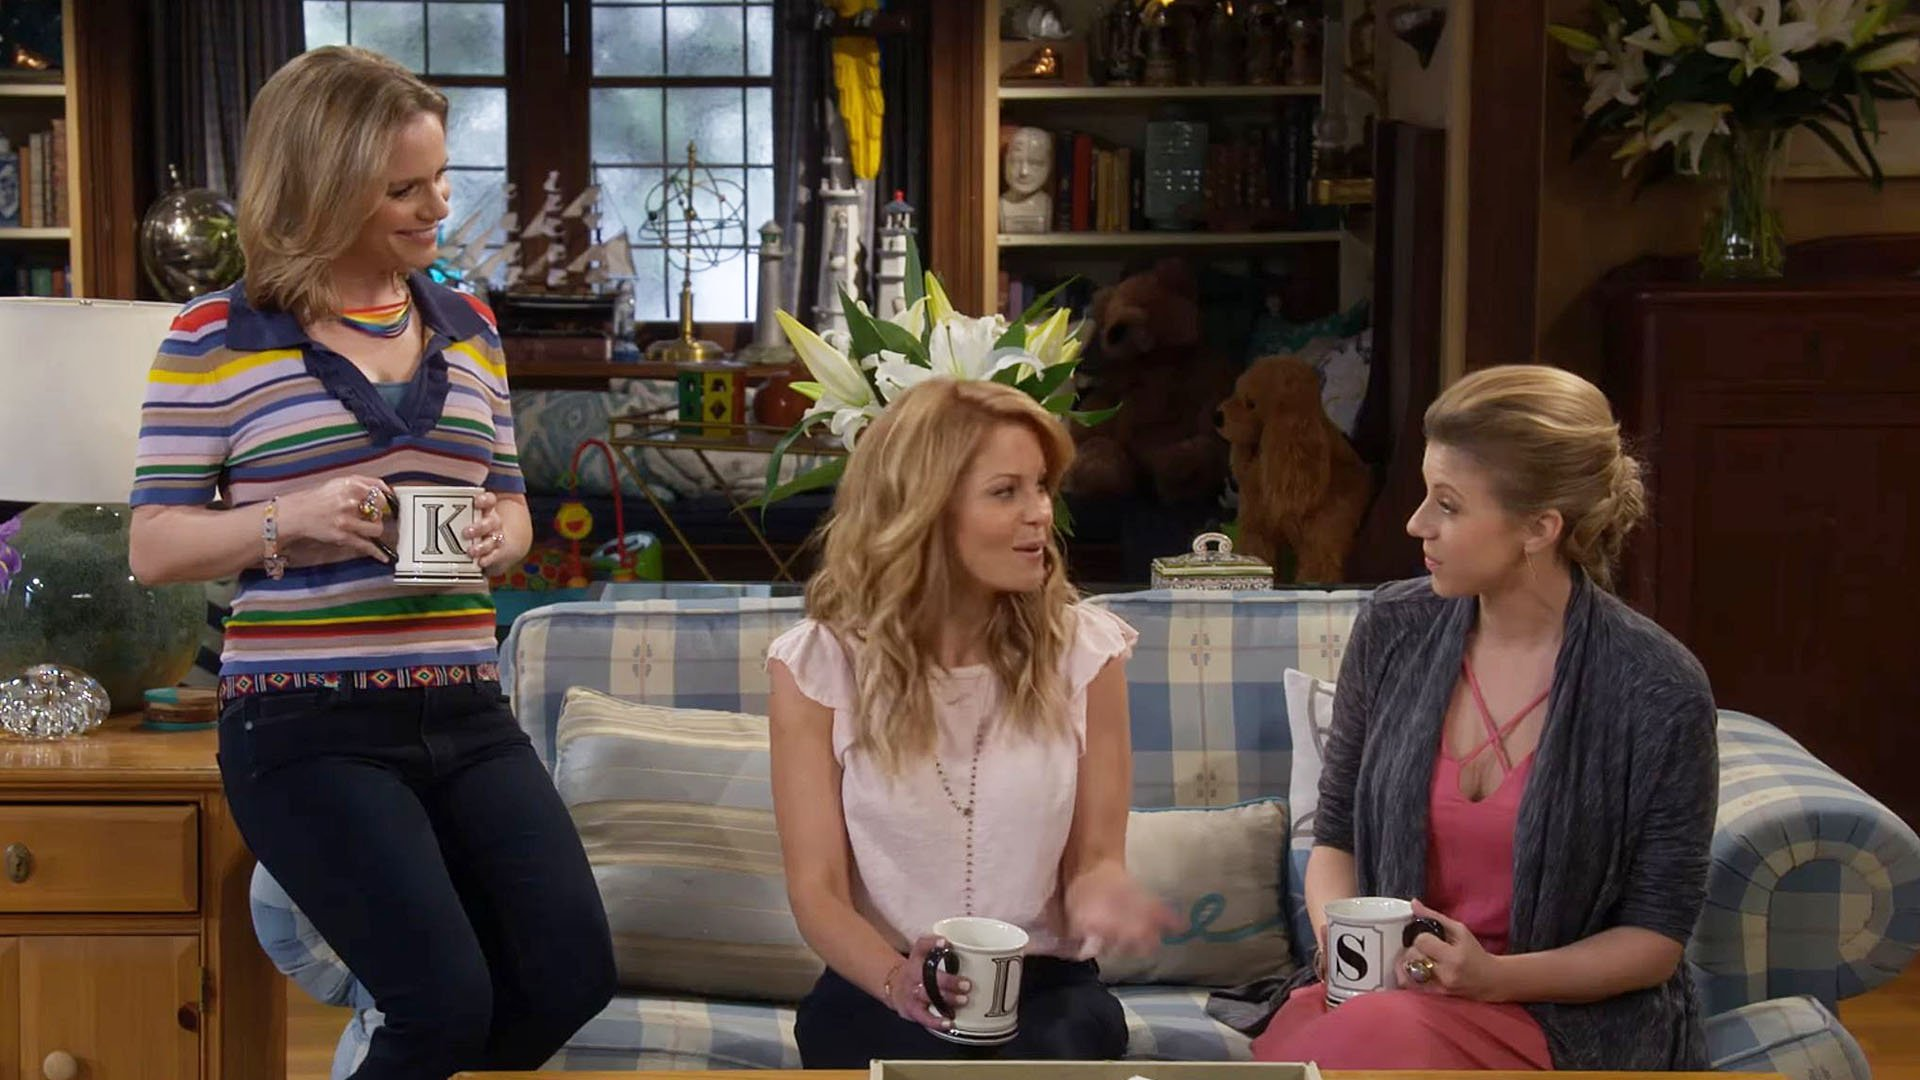 New 'Fuller House' trailer for 3rd season will give you all kinds of nostalgia https://t.co/11mocysh5g https://t.co/oCgRMaPfru